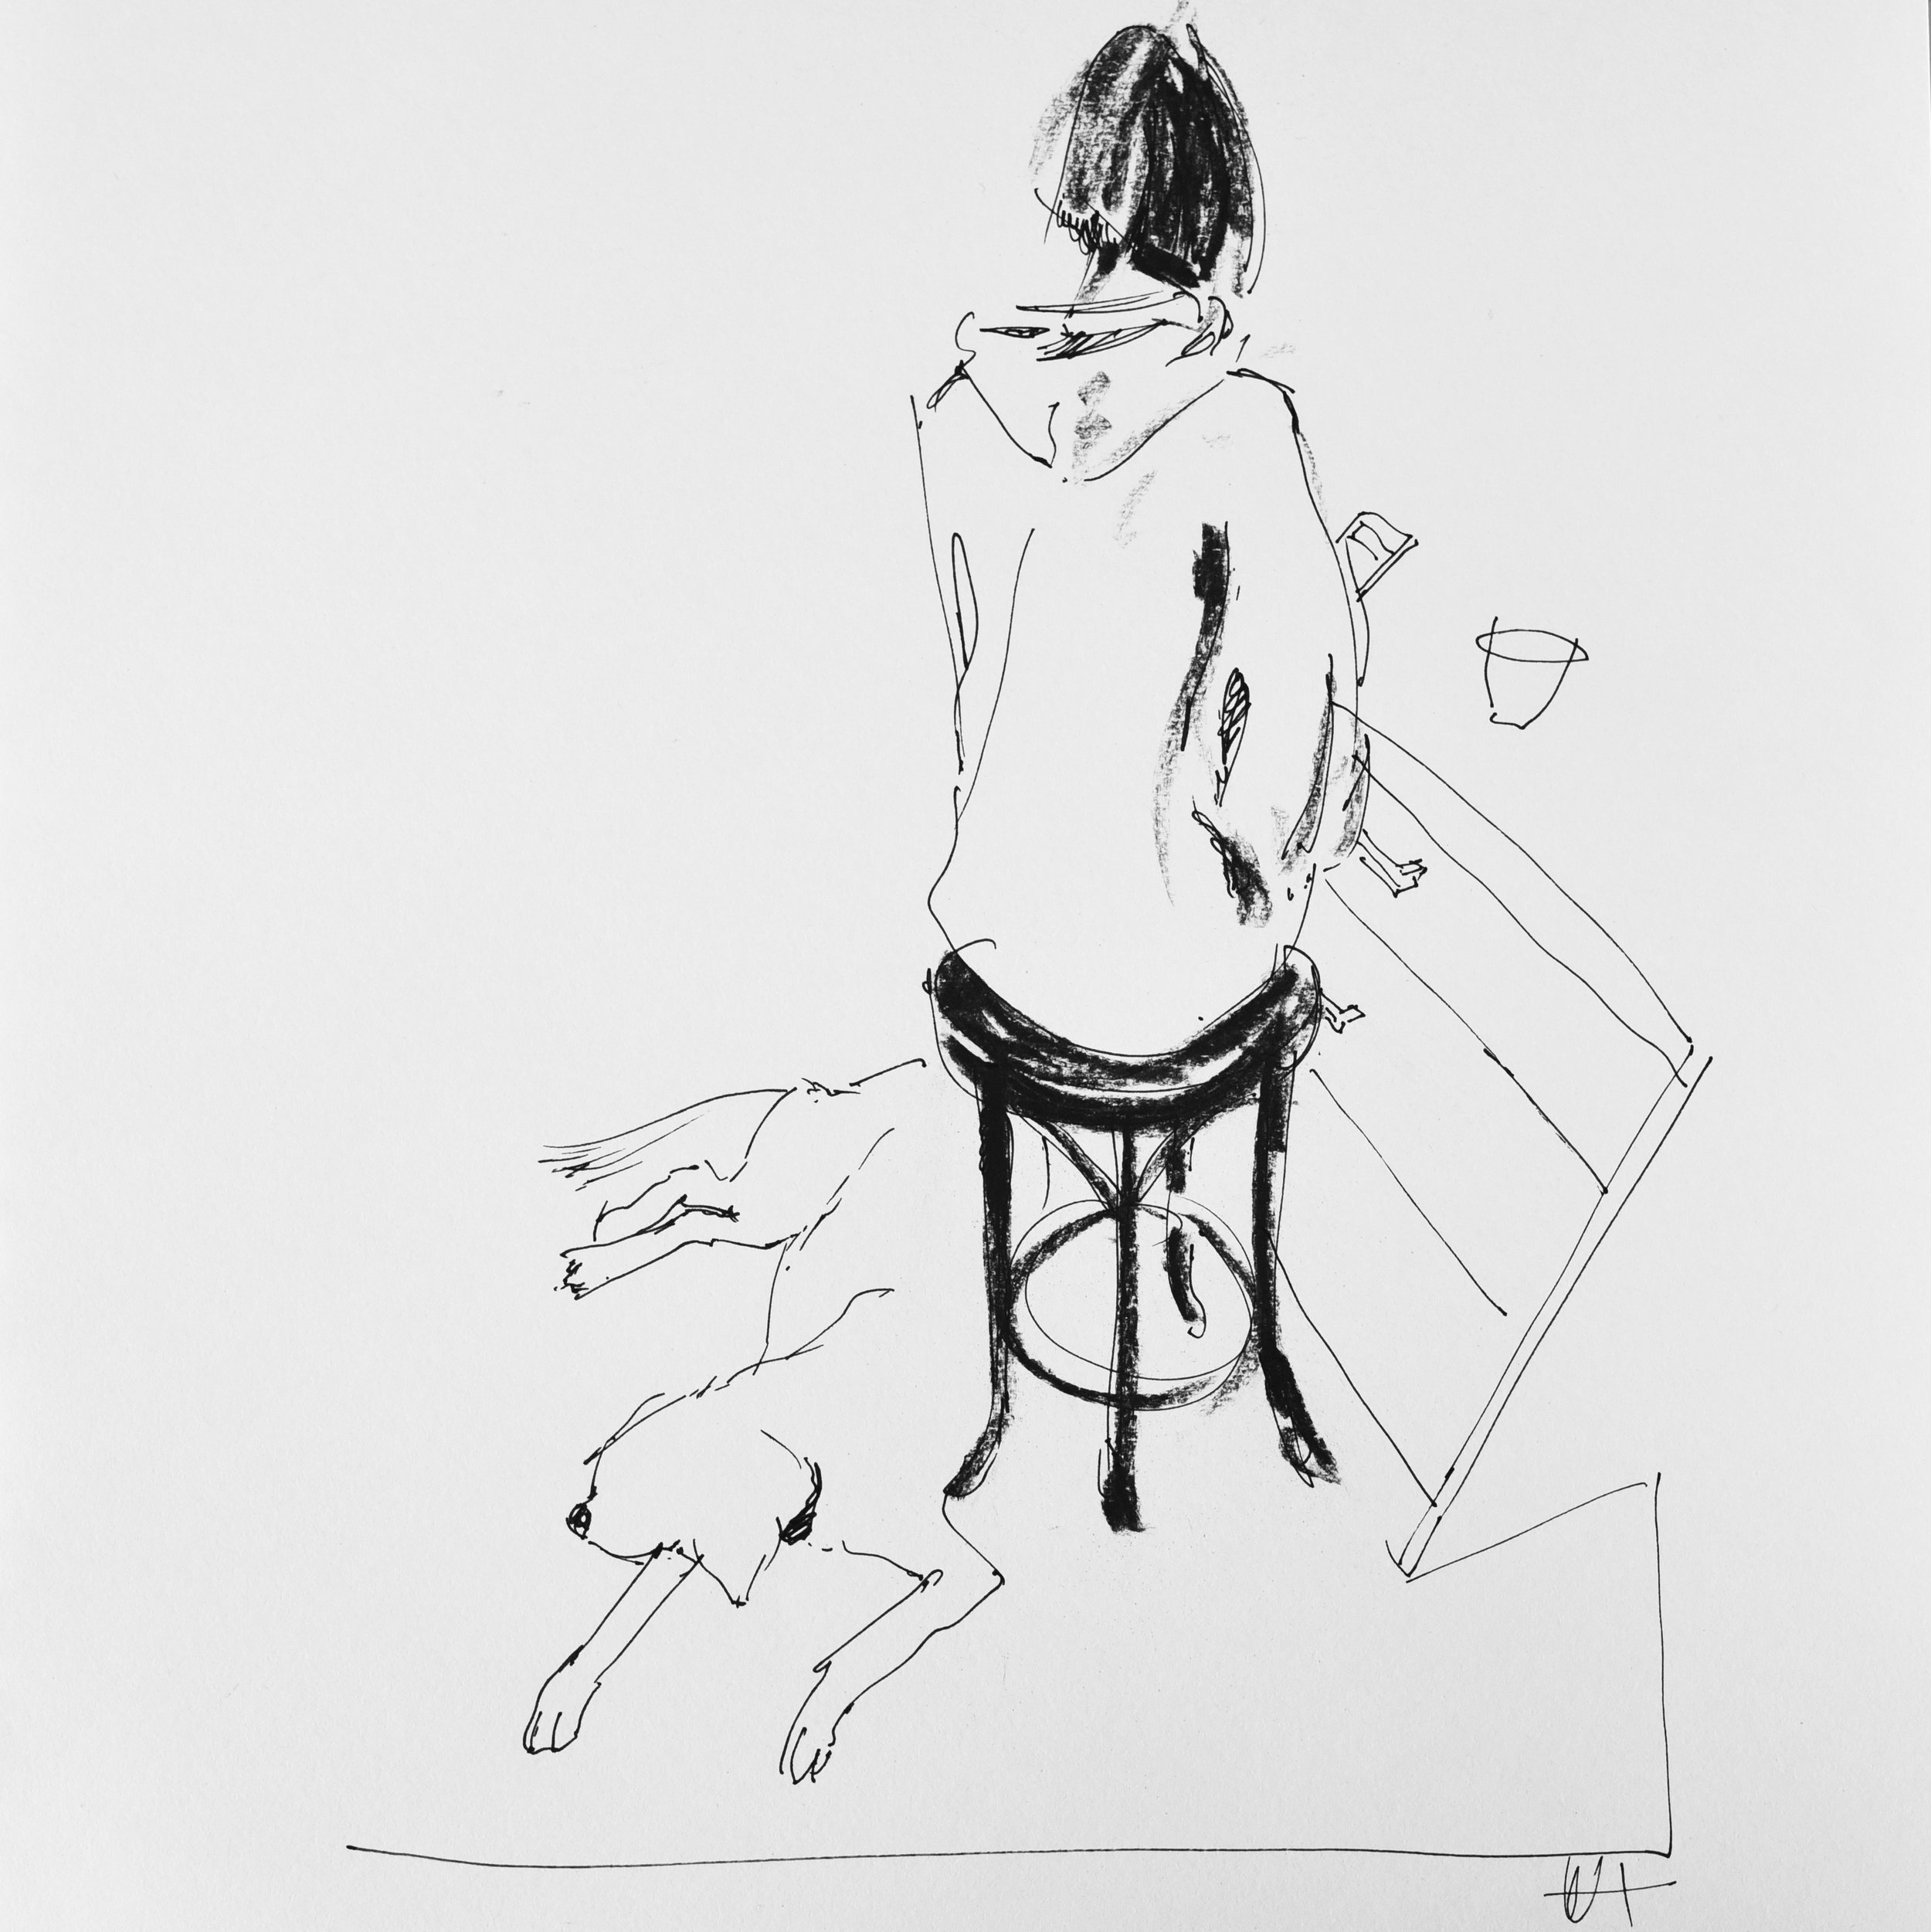 Line drawing of a woman on Instagram with her dog.